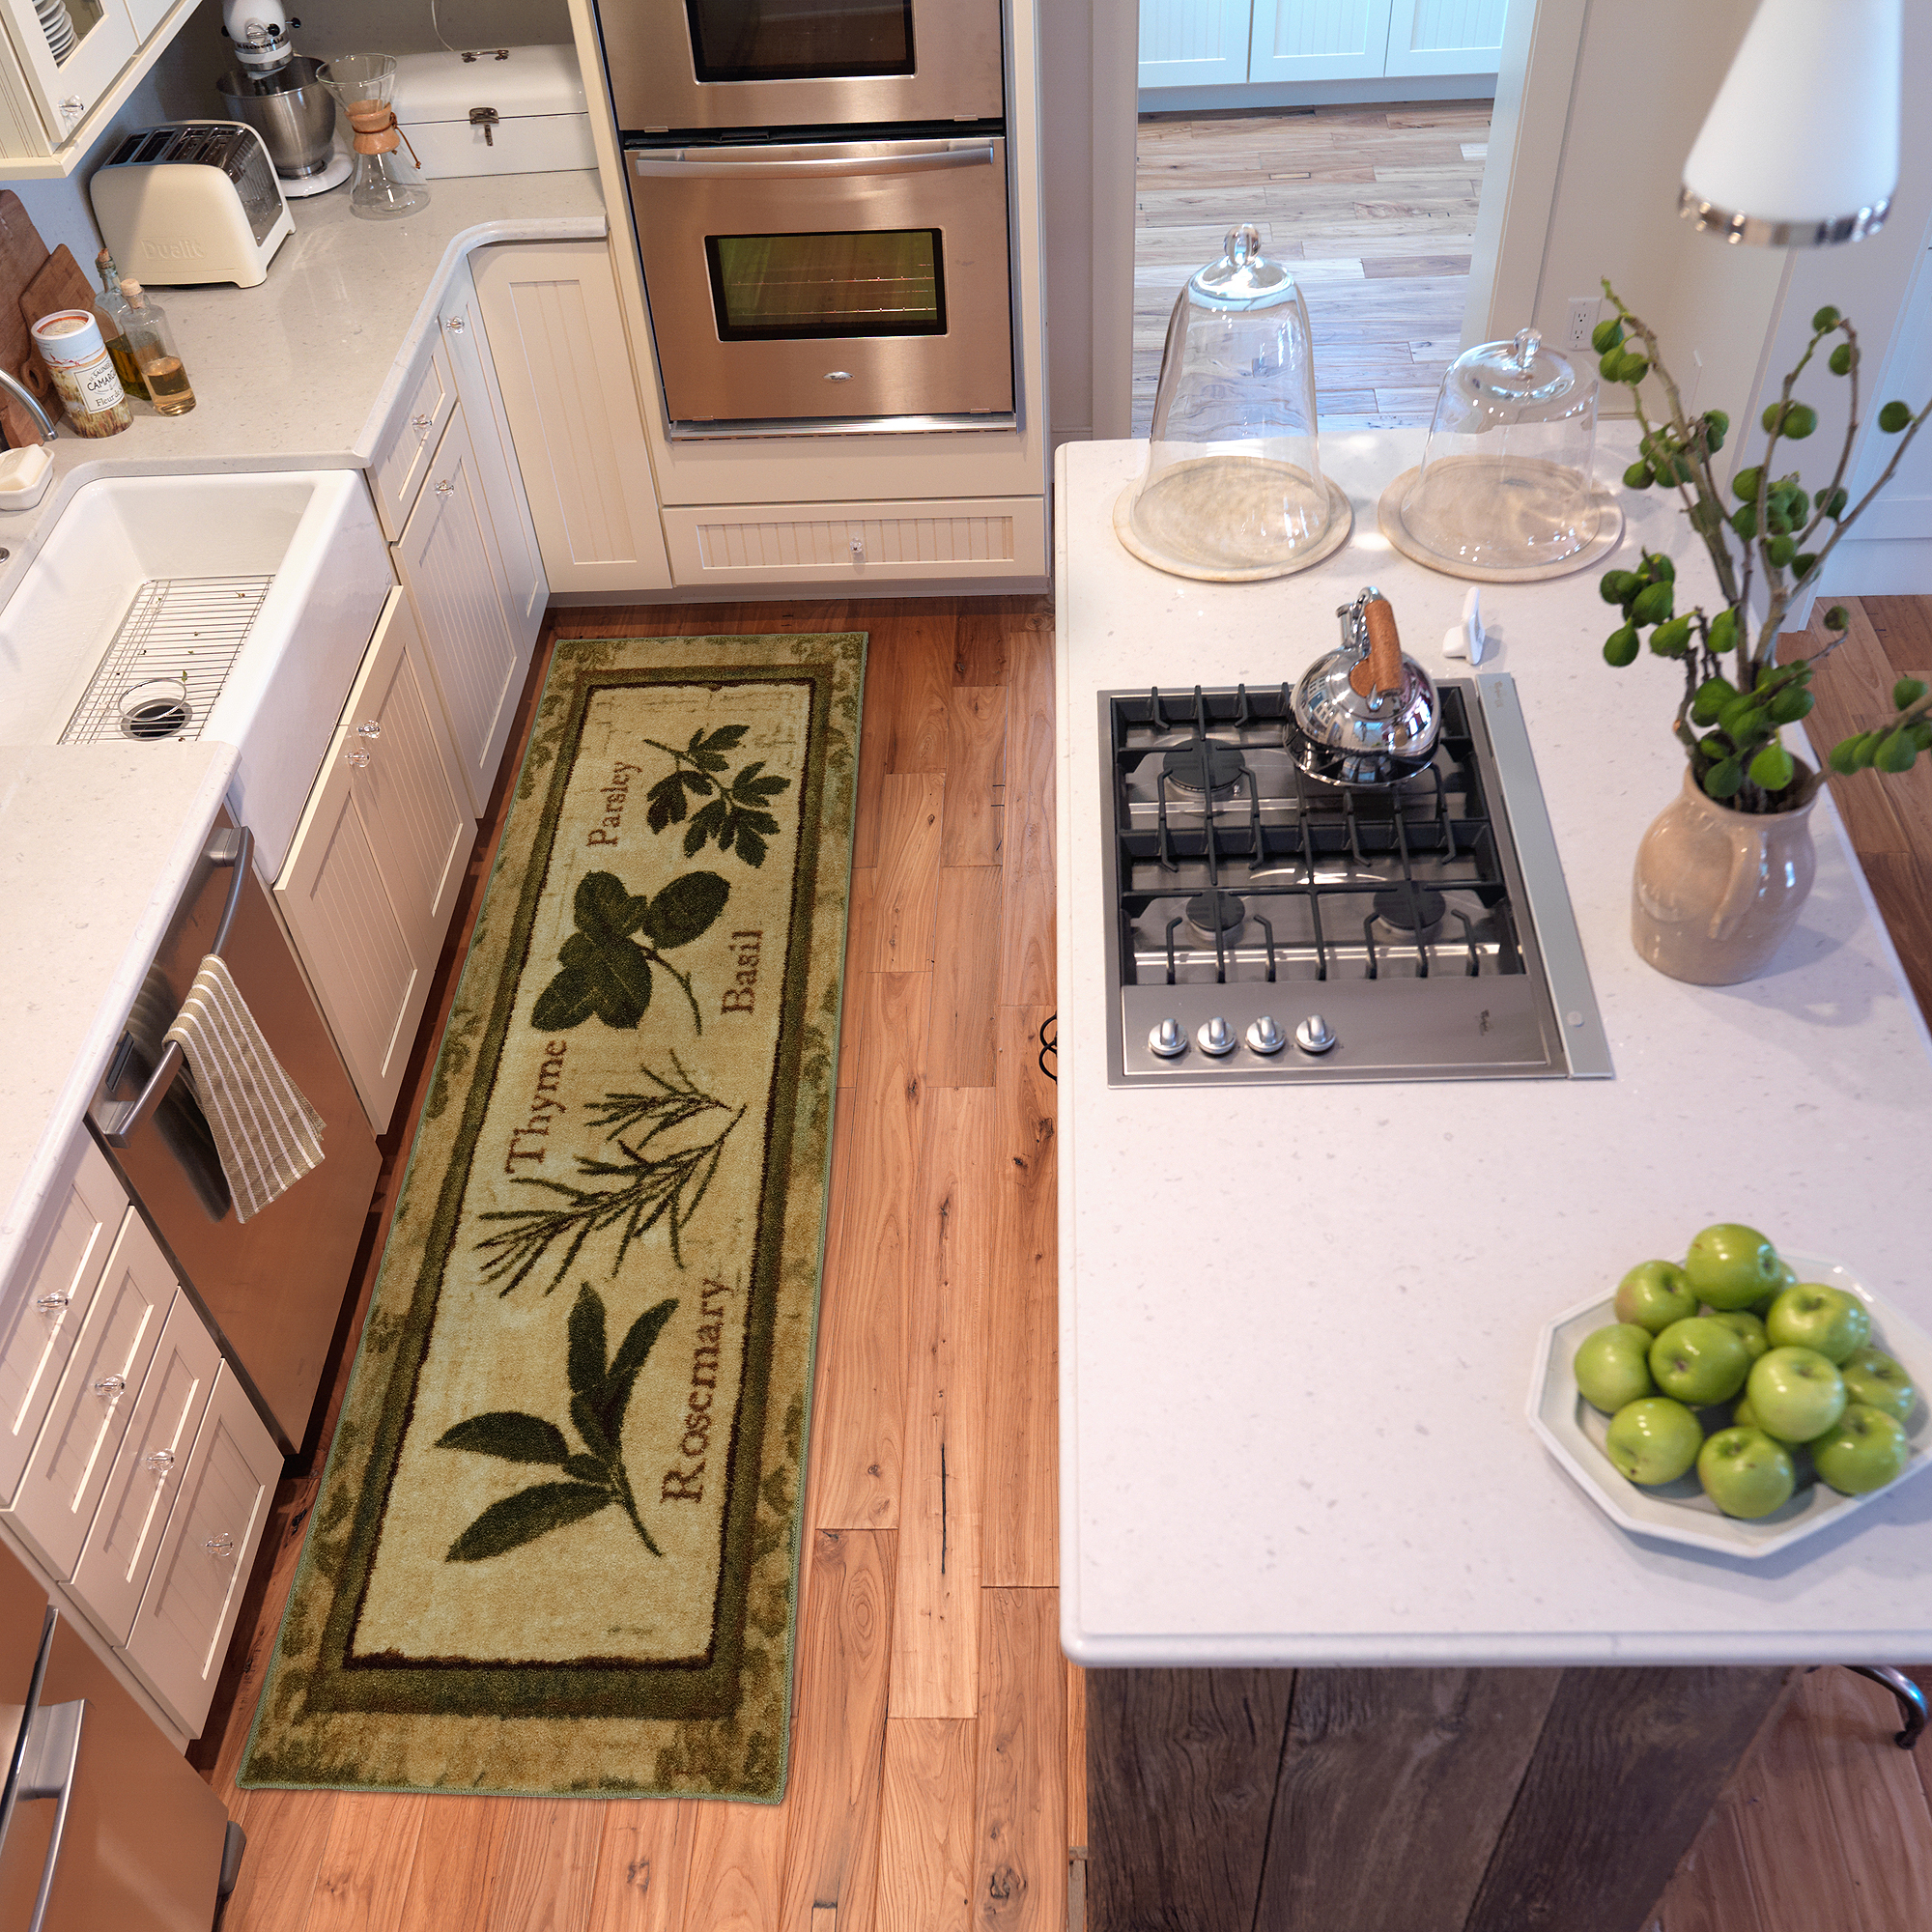 Kitchen Rugs At Walmart Home Decor